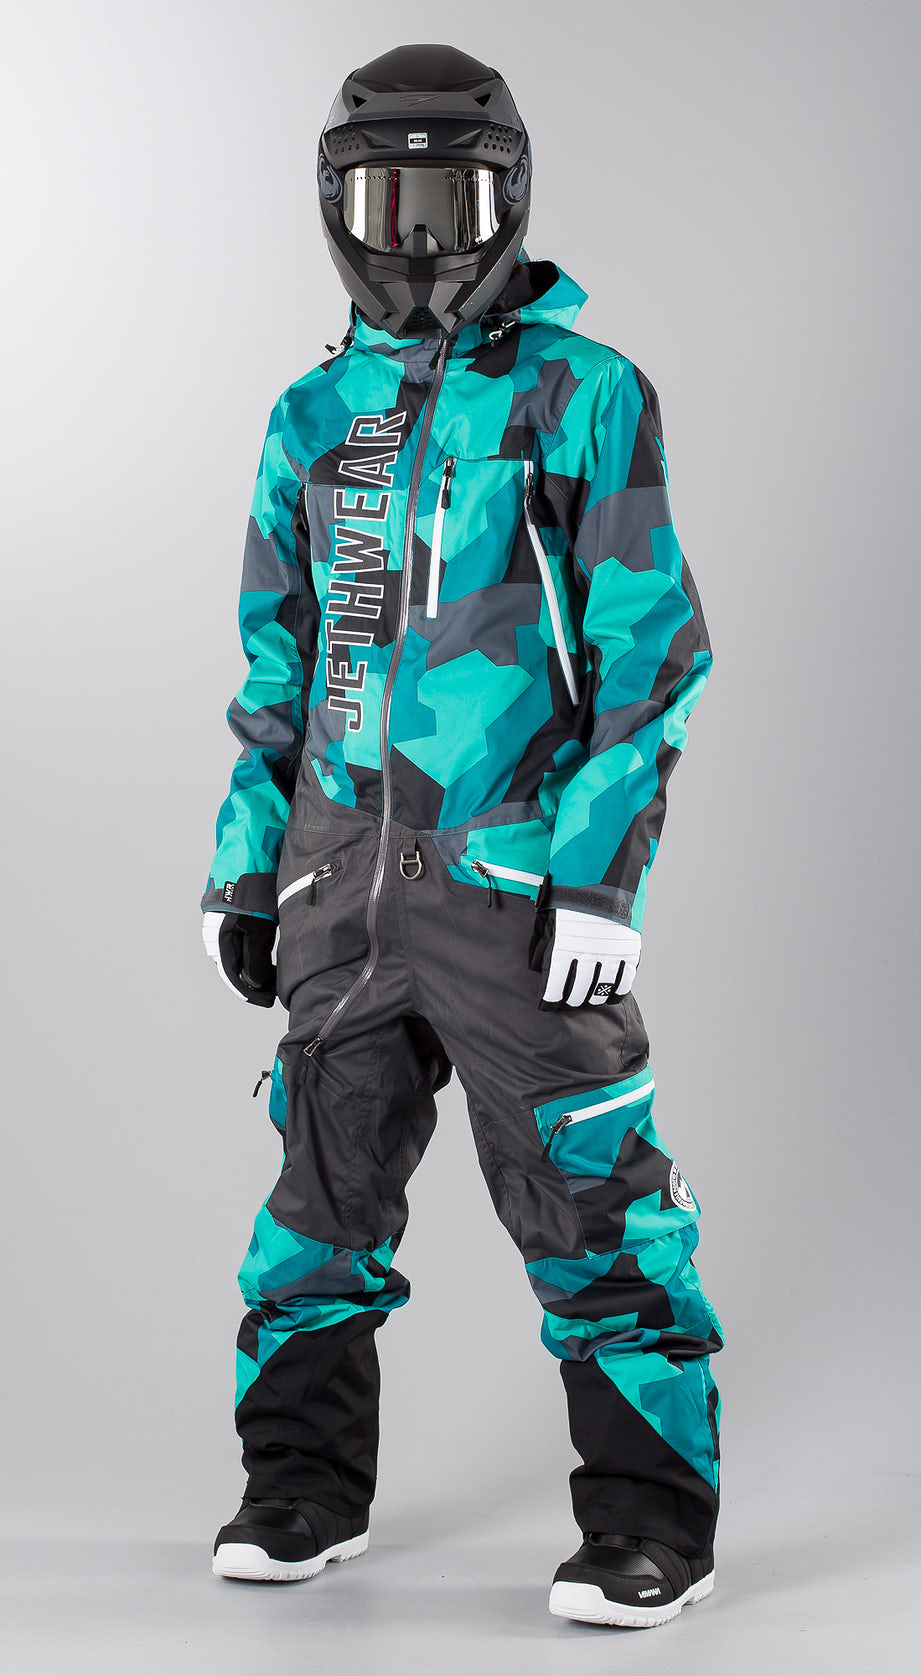 Jethwear The One  Teal Camo Skoterkläder Multi